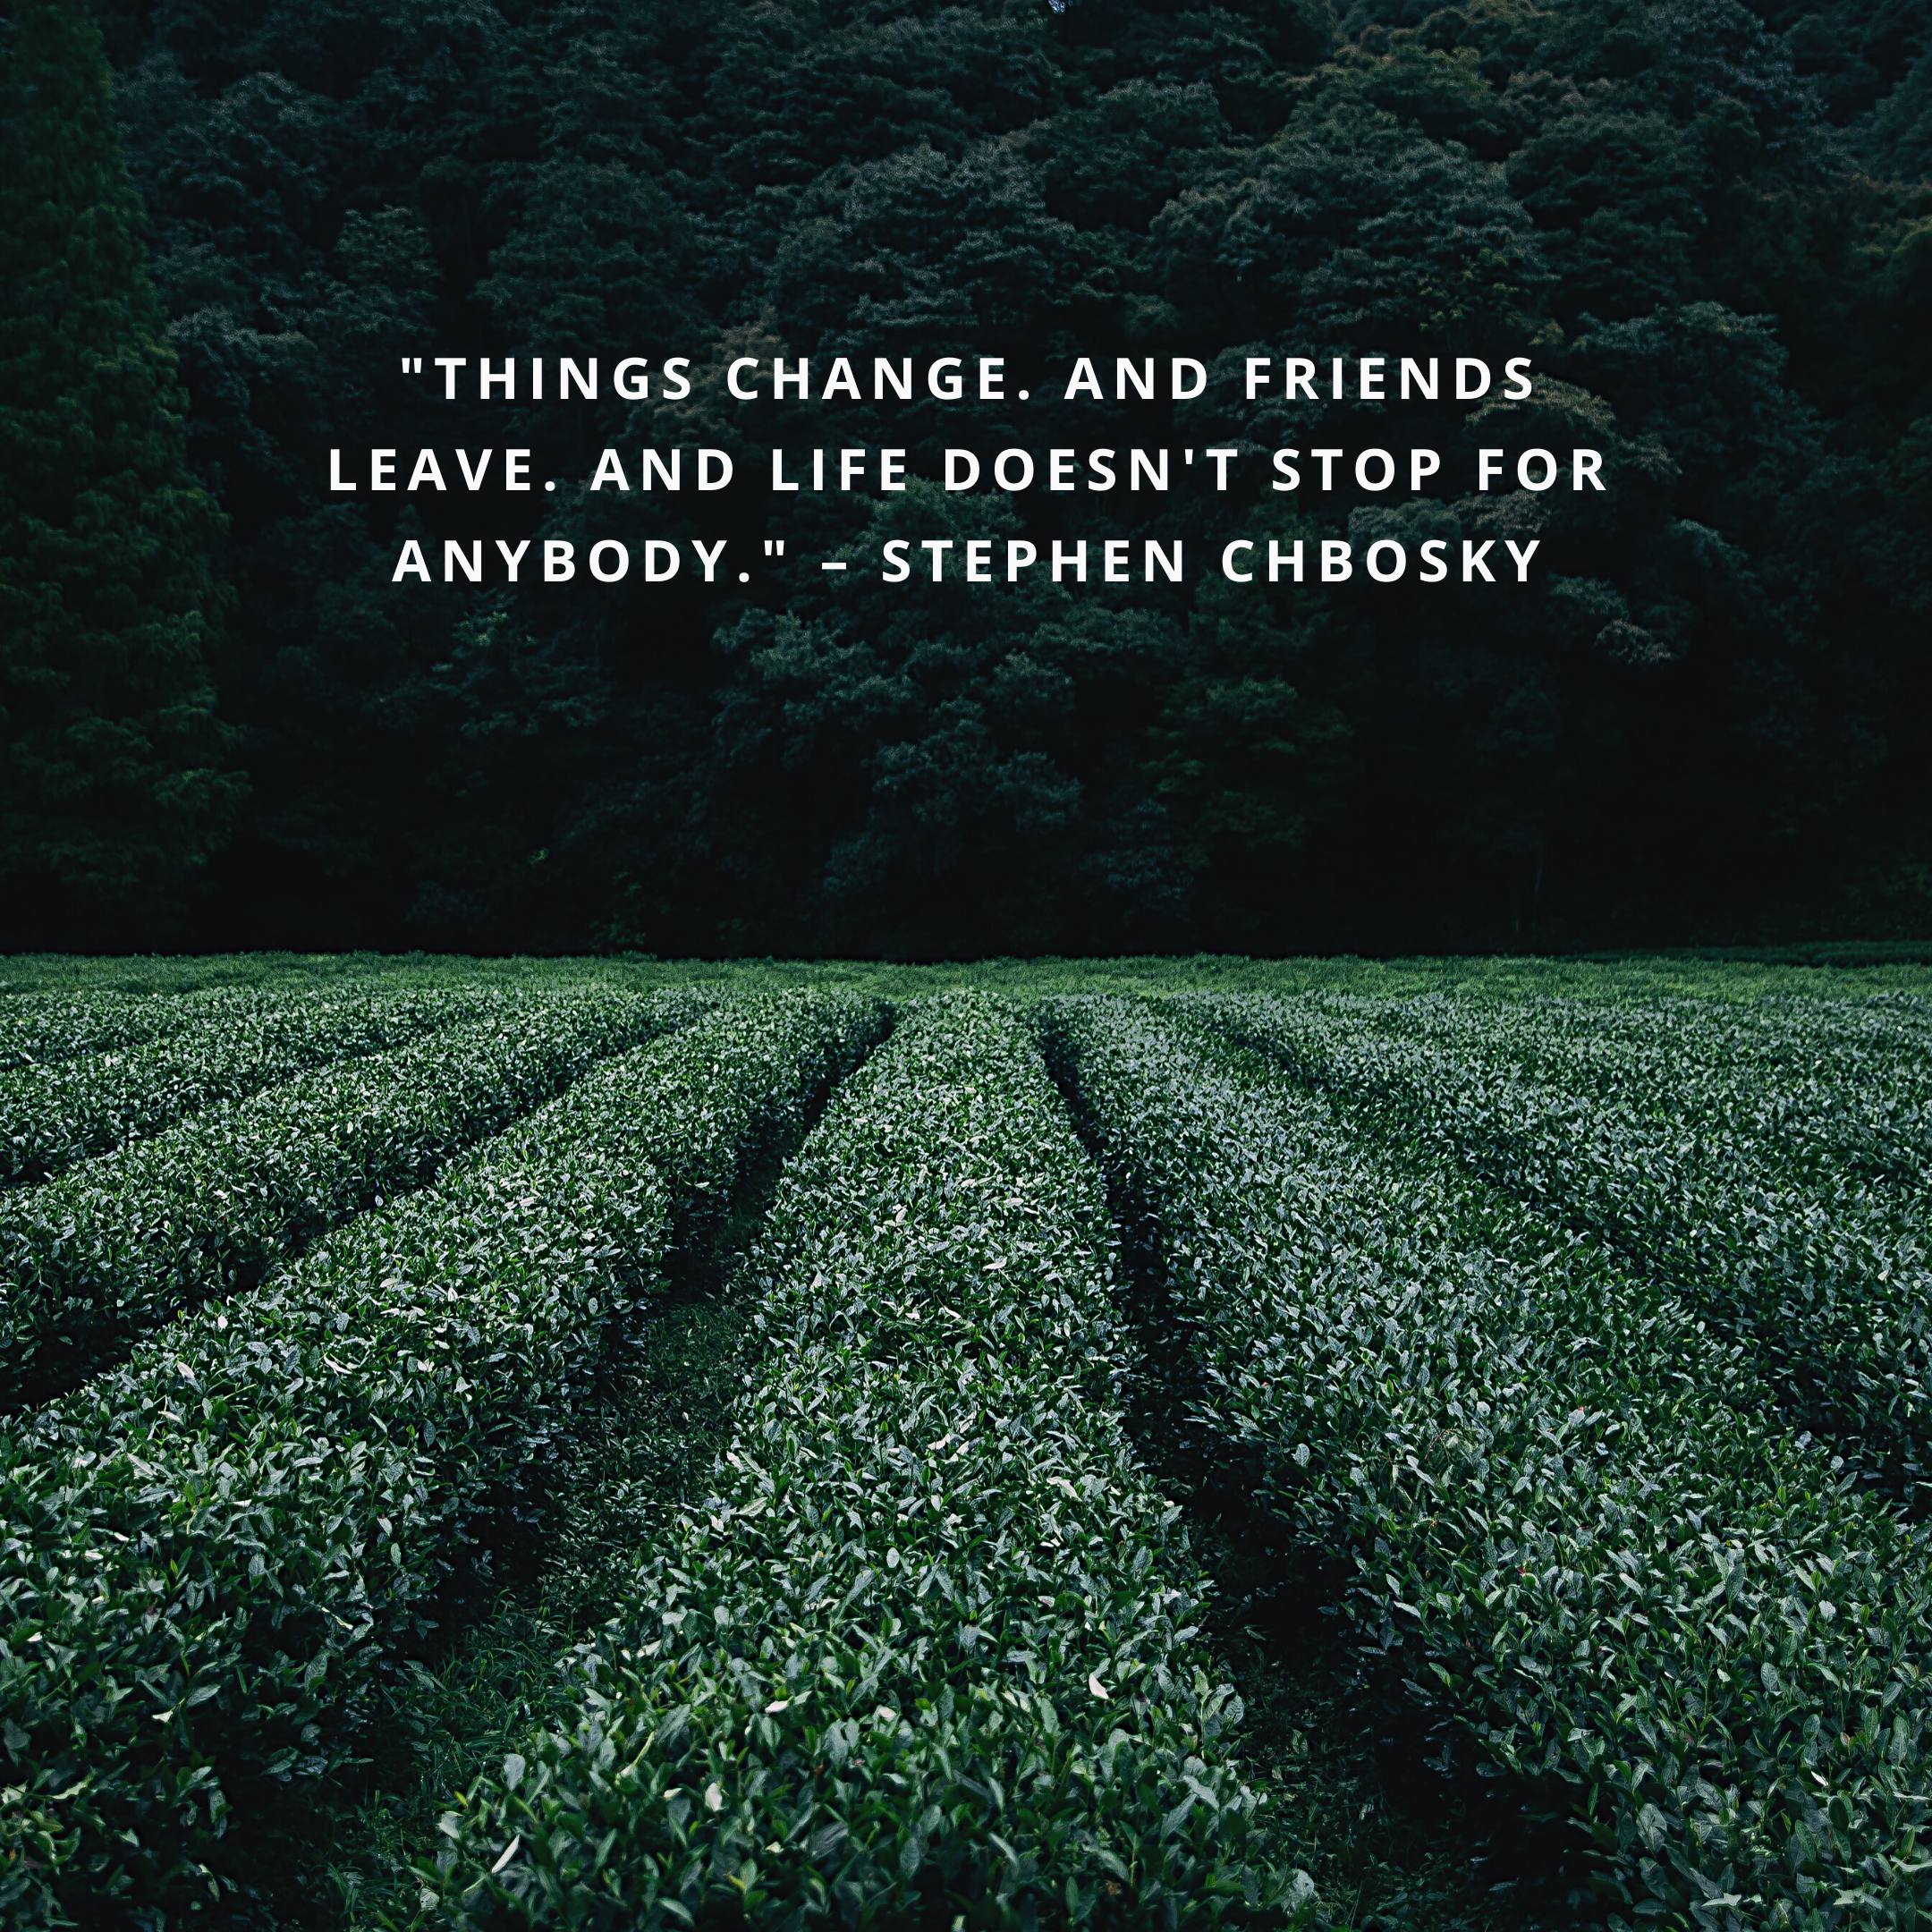 """""""Things change. And friends leave. And life doesn't stop for anybody."""" –Stephen Chbosky"""